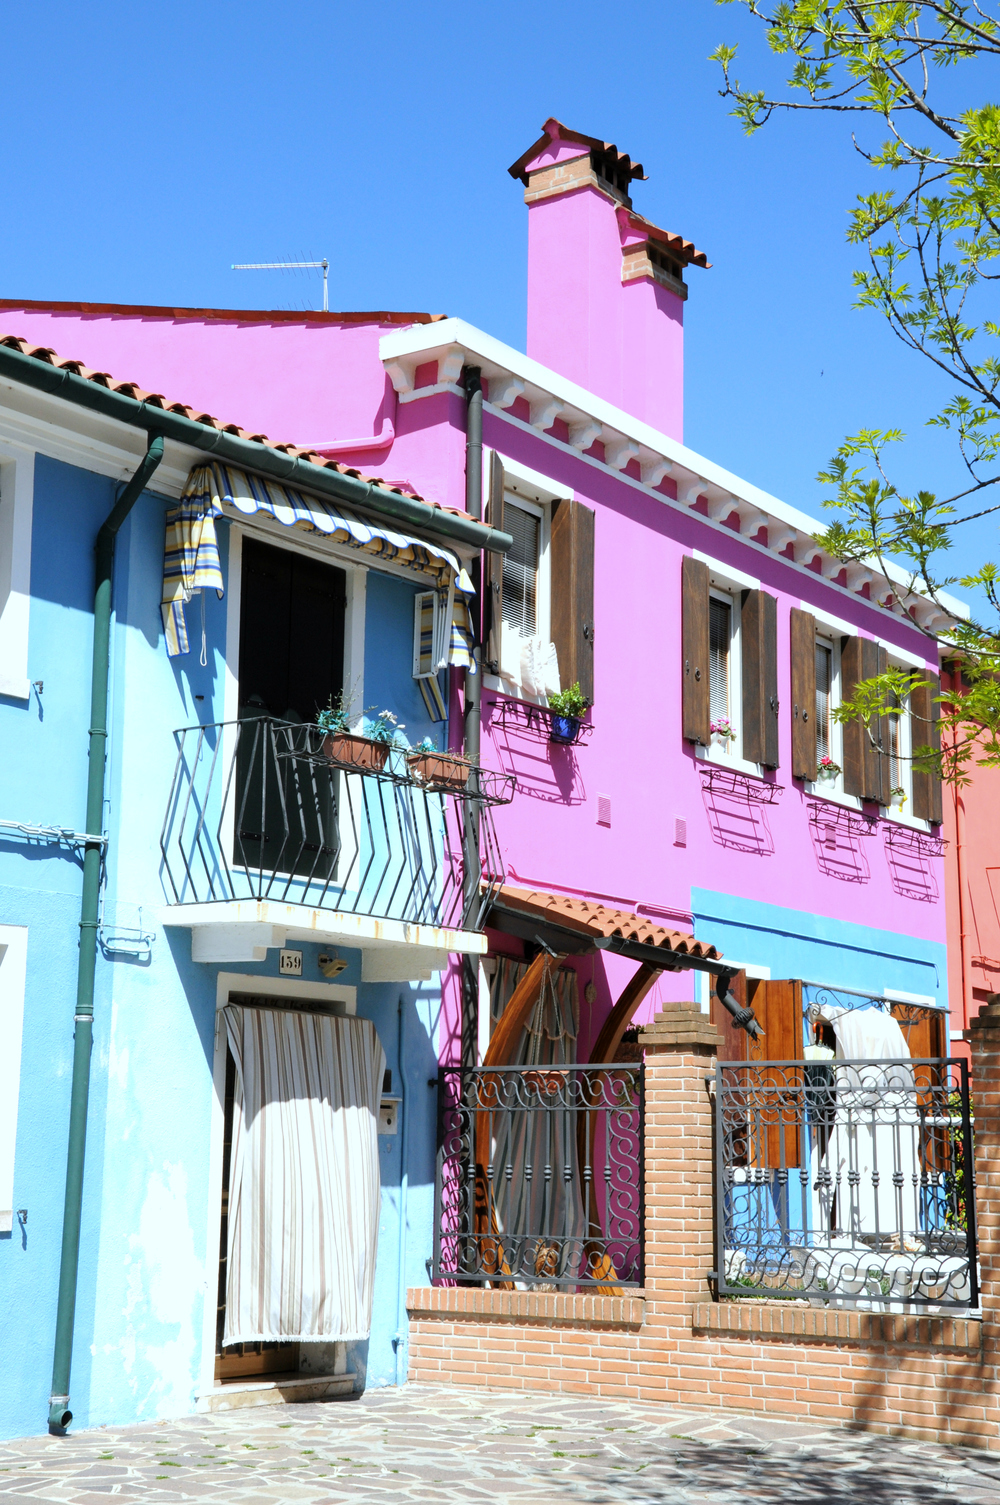 Burano's technicolor houses